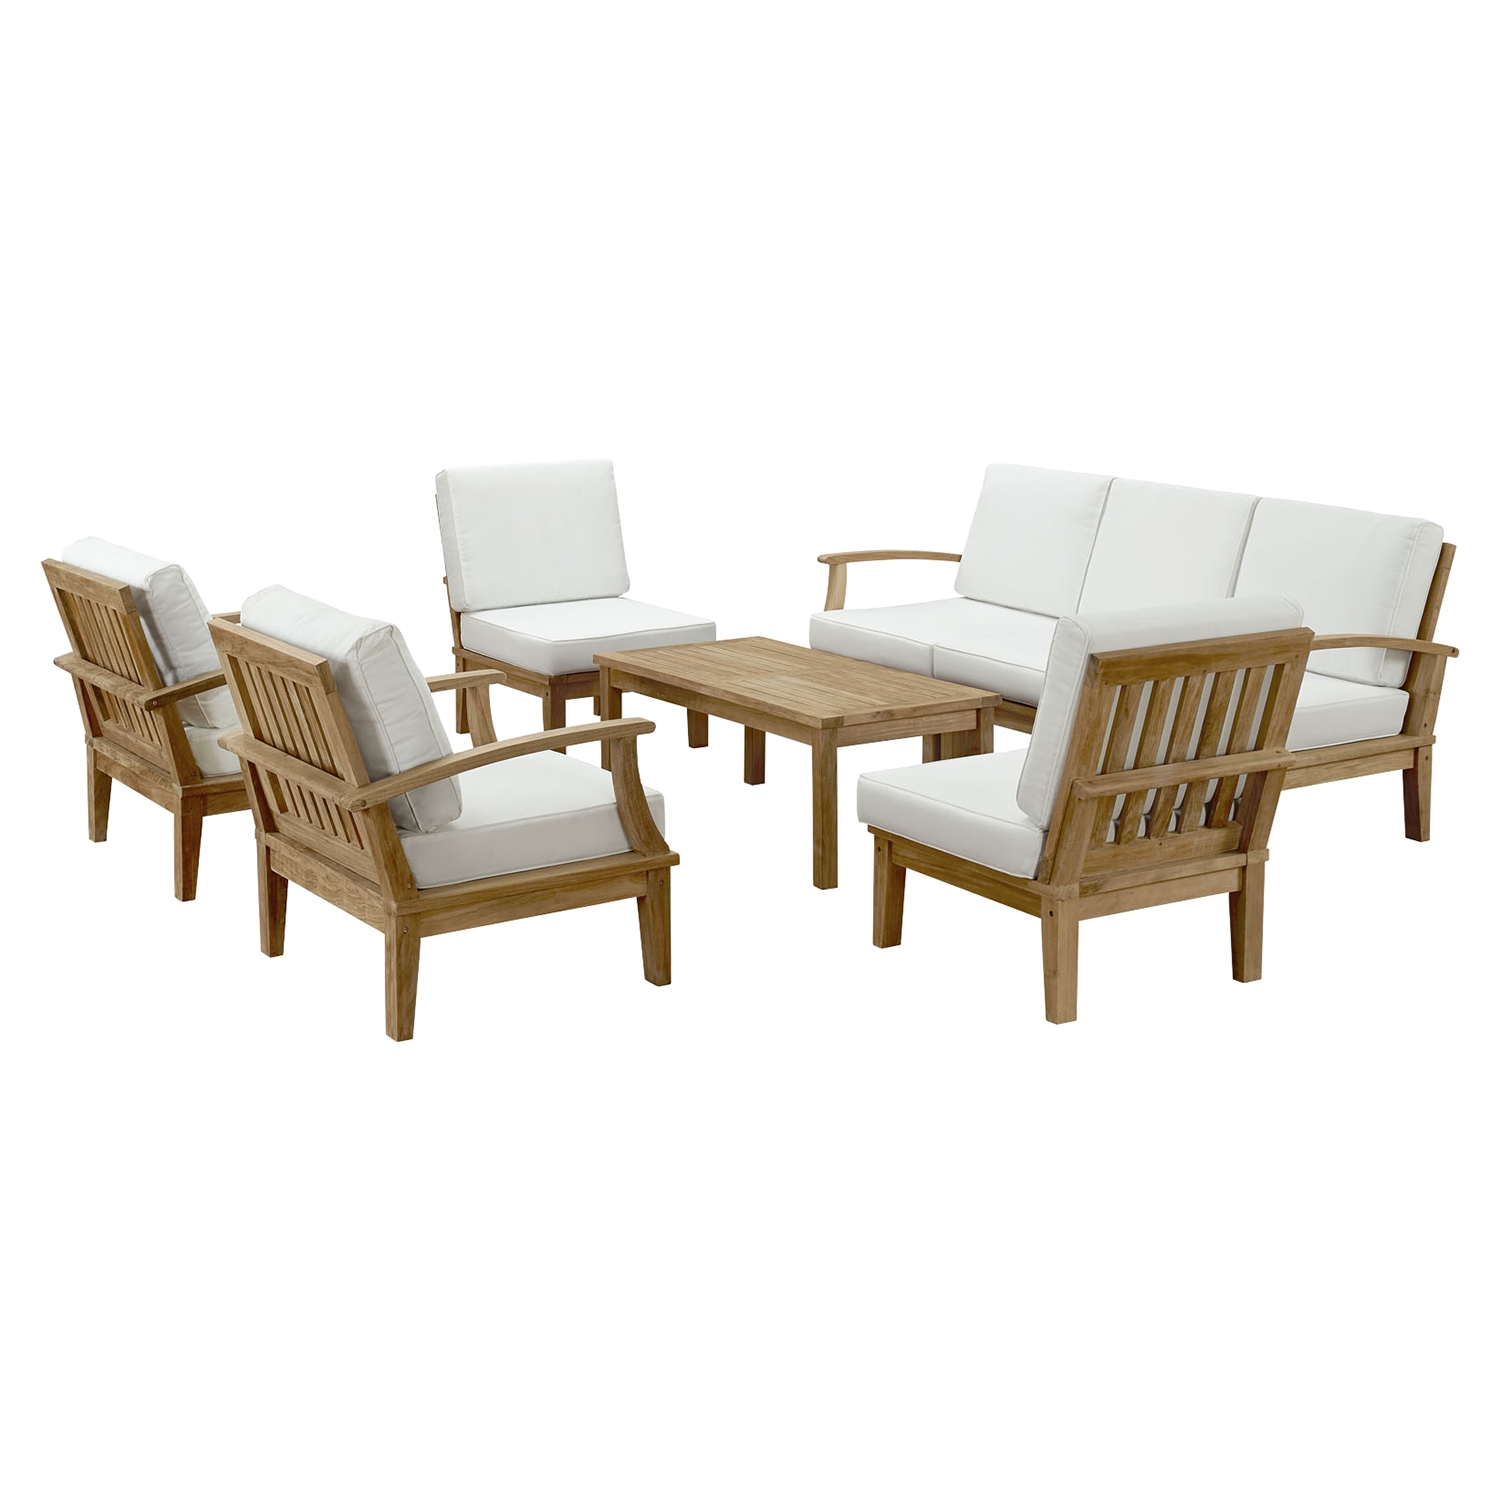 Marina 8 Pieces Patio Teak Sofa Set - Natural Frame, White - EEI-1479-NAT-WHI-SET